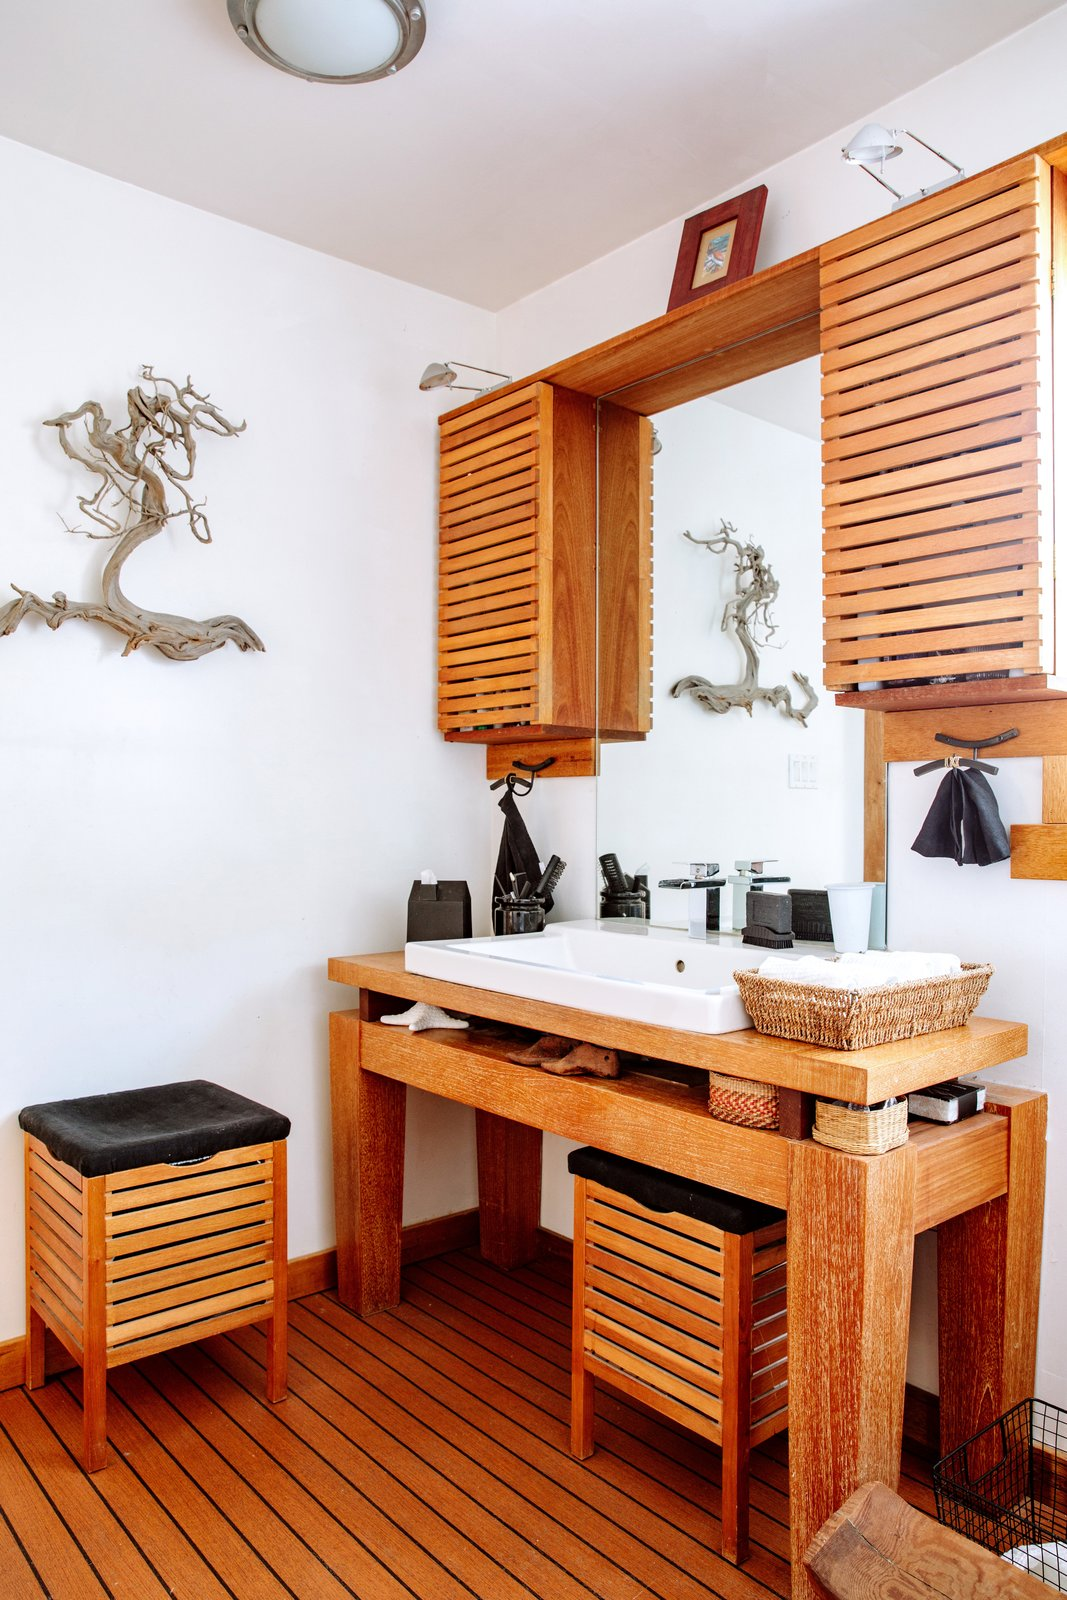 Tricia Rose's Japanese-Style Bathroom